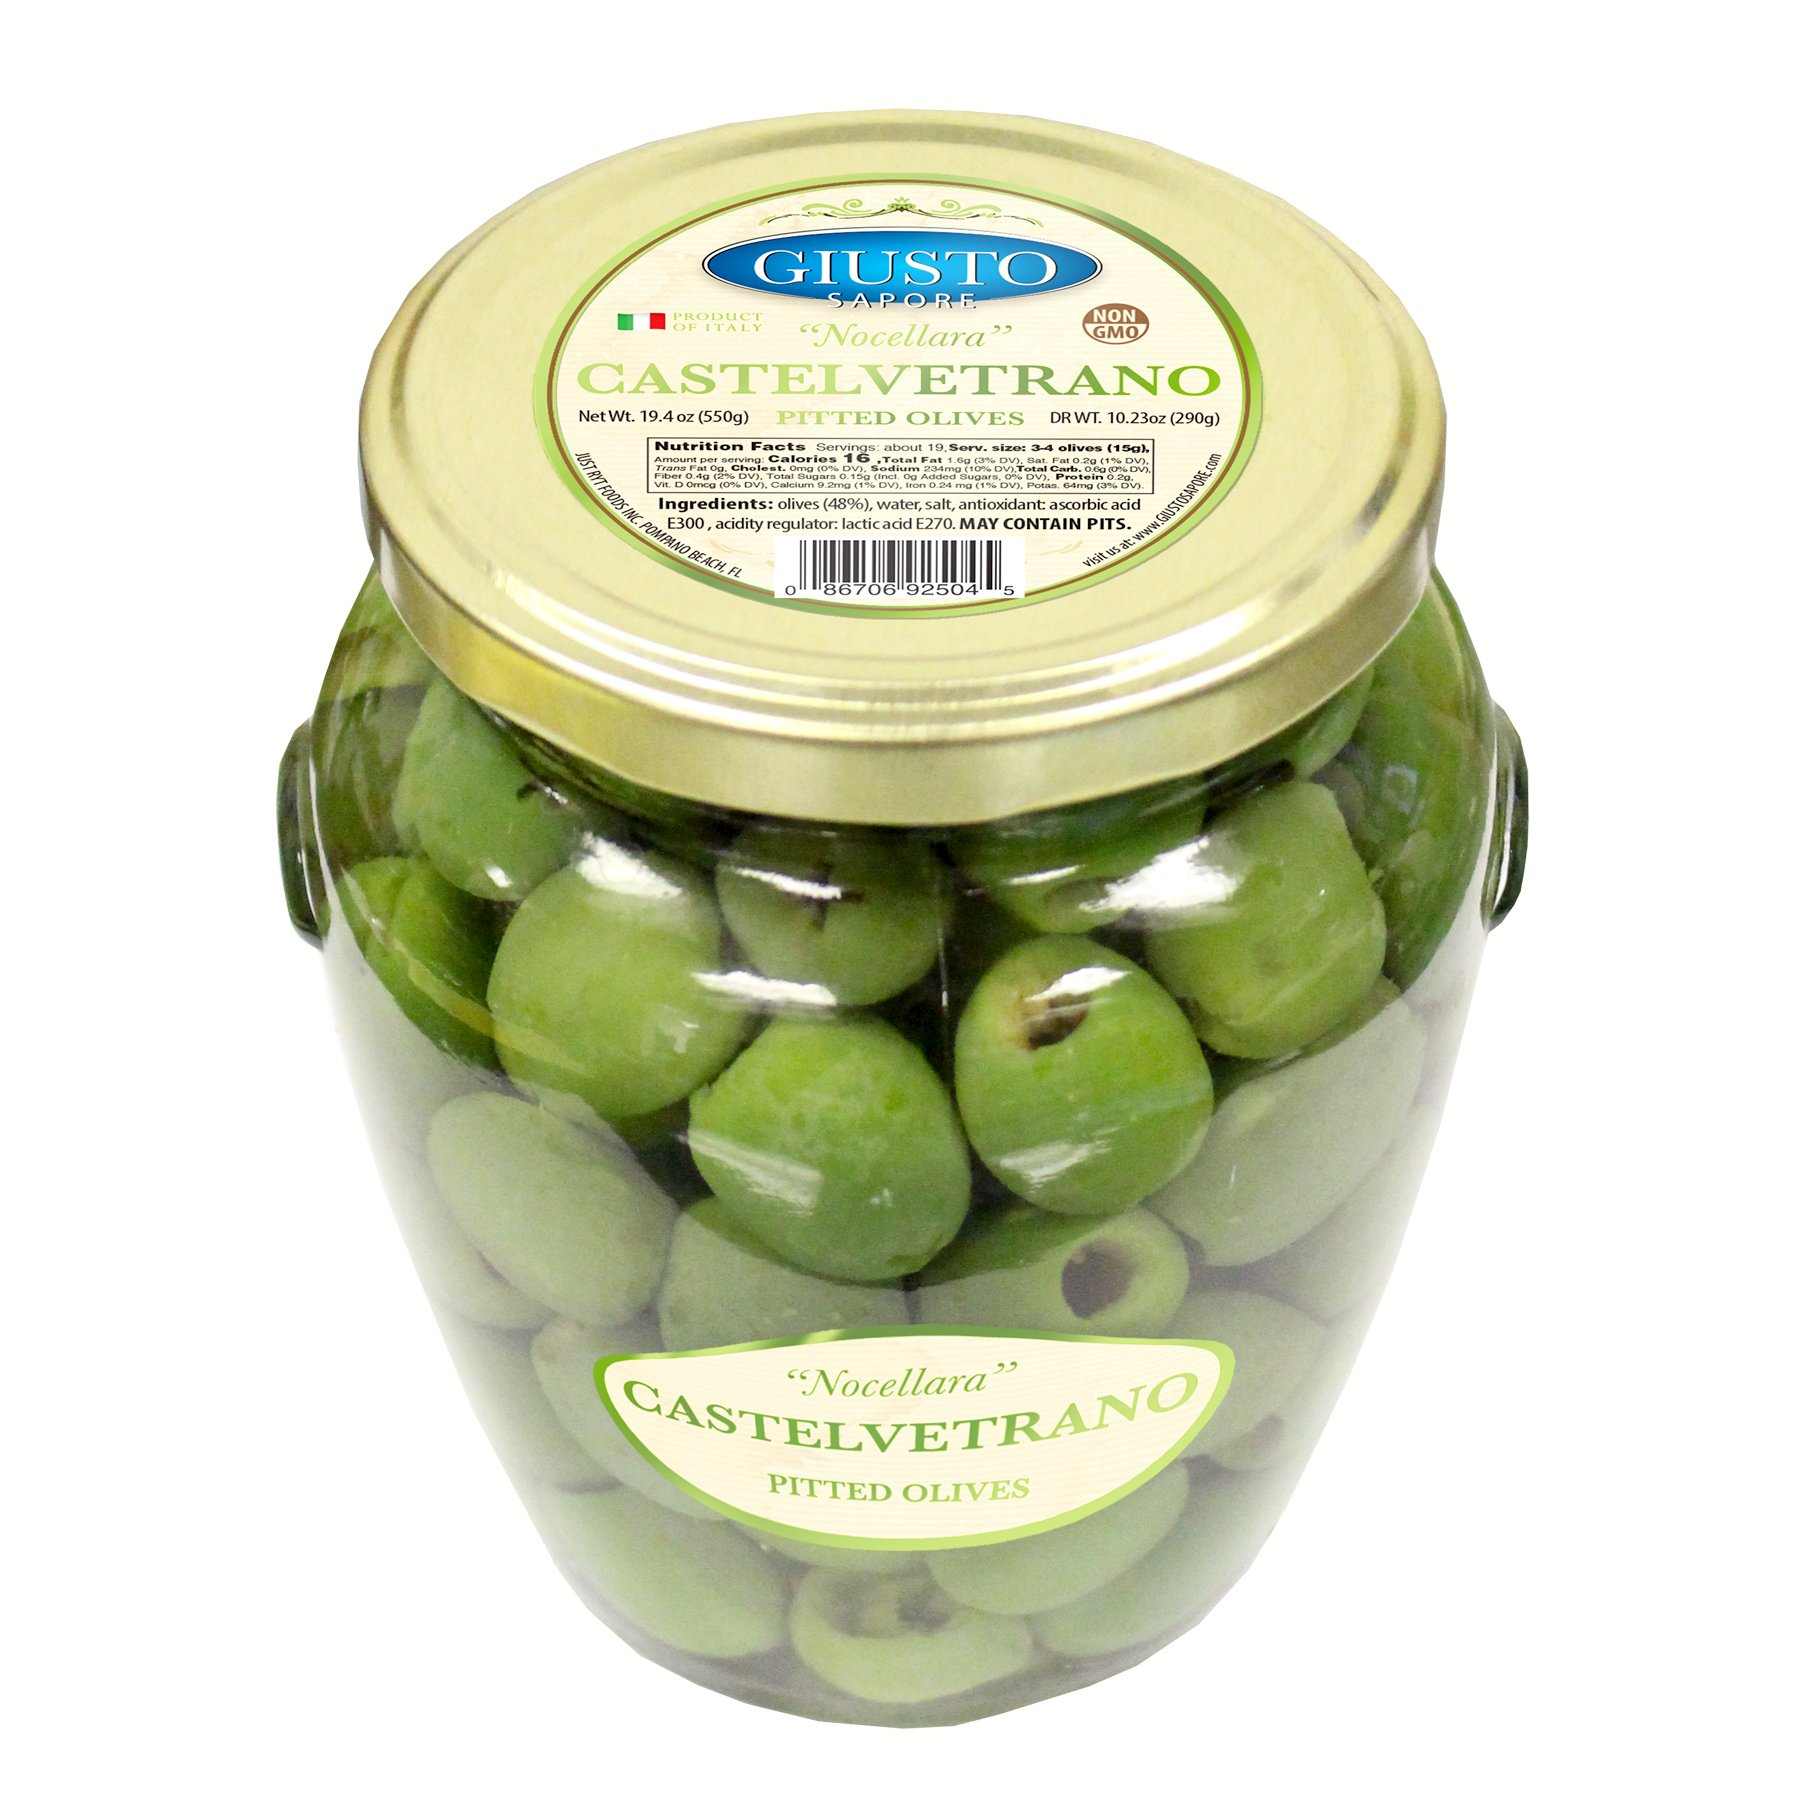 Giusto Sapore Italian Olives - Castelvetrano Pitted - Premium Gourmet GMO Free - Imported from Italy and Family Owned - 19.4oz.